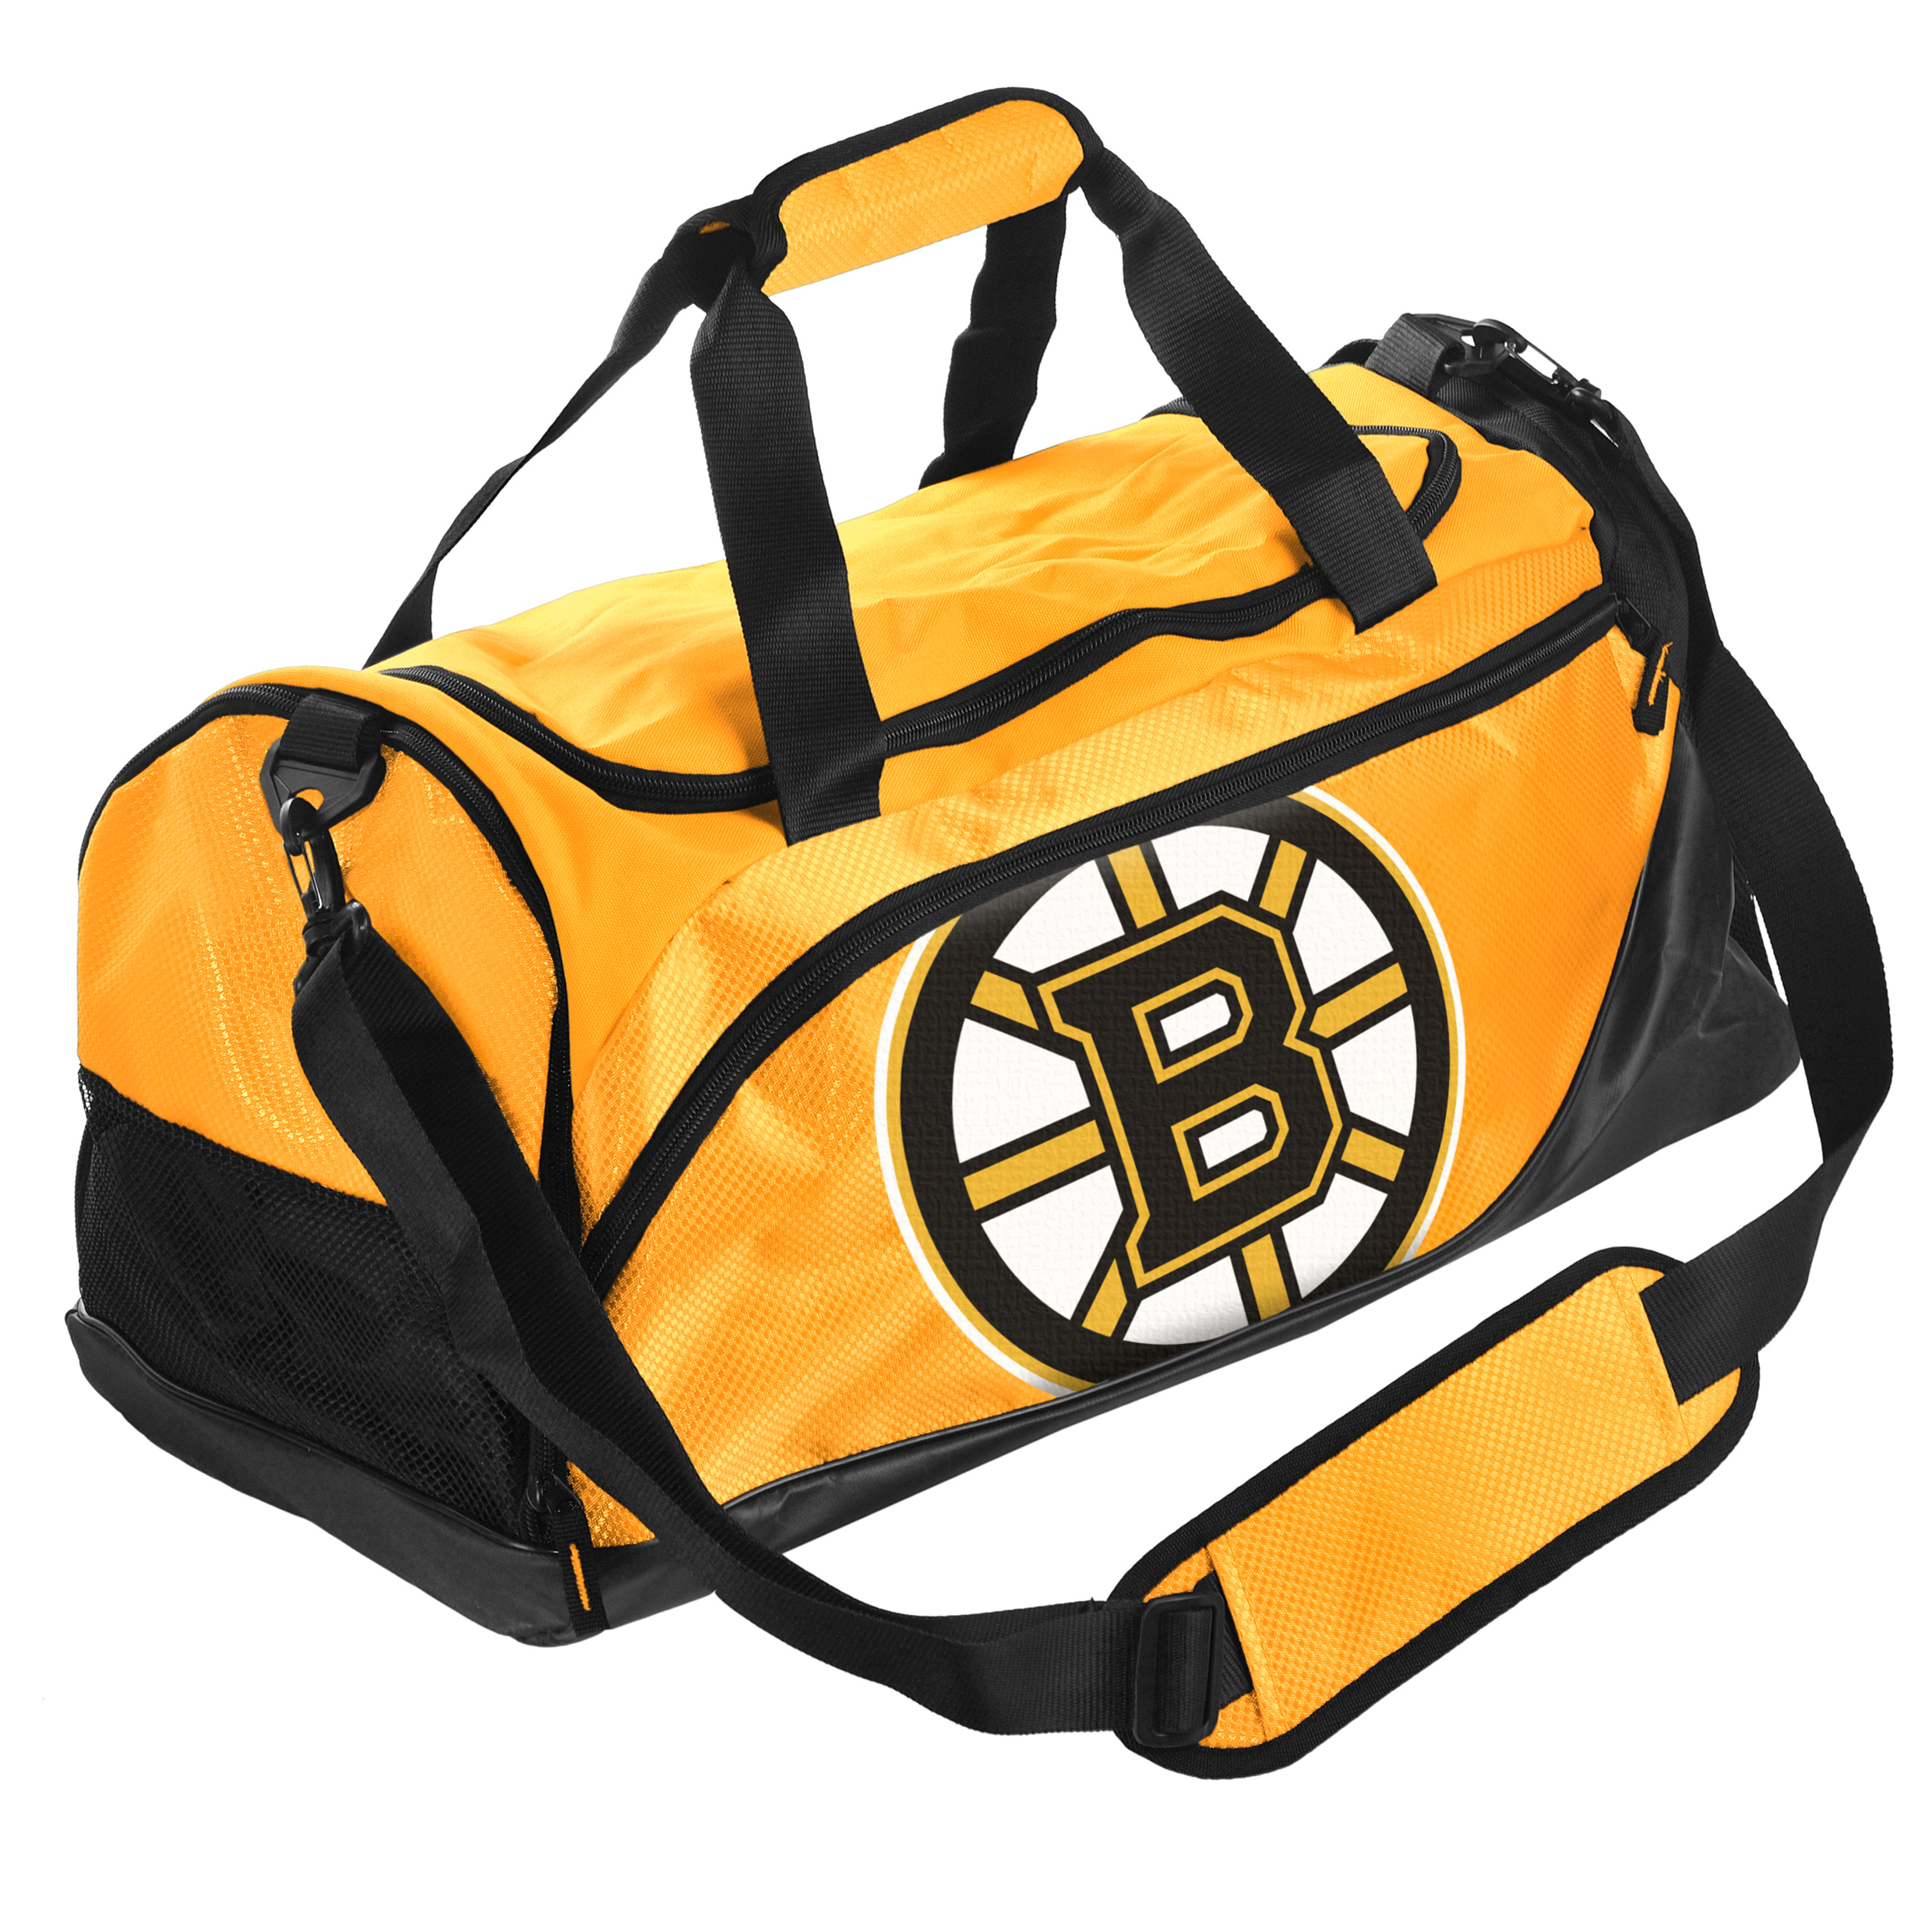 Boston Bruins Locker Room Duffle Bag